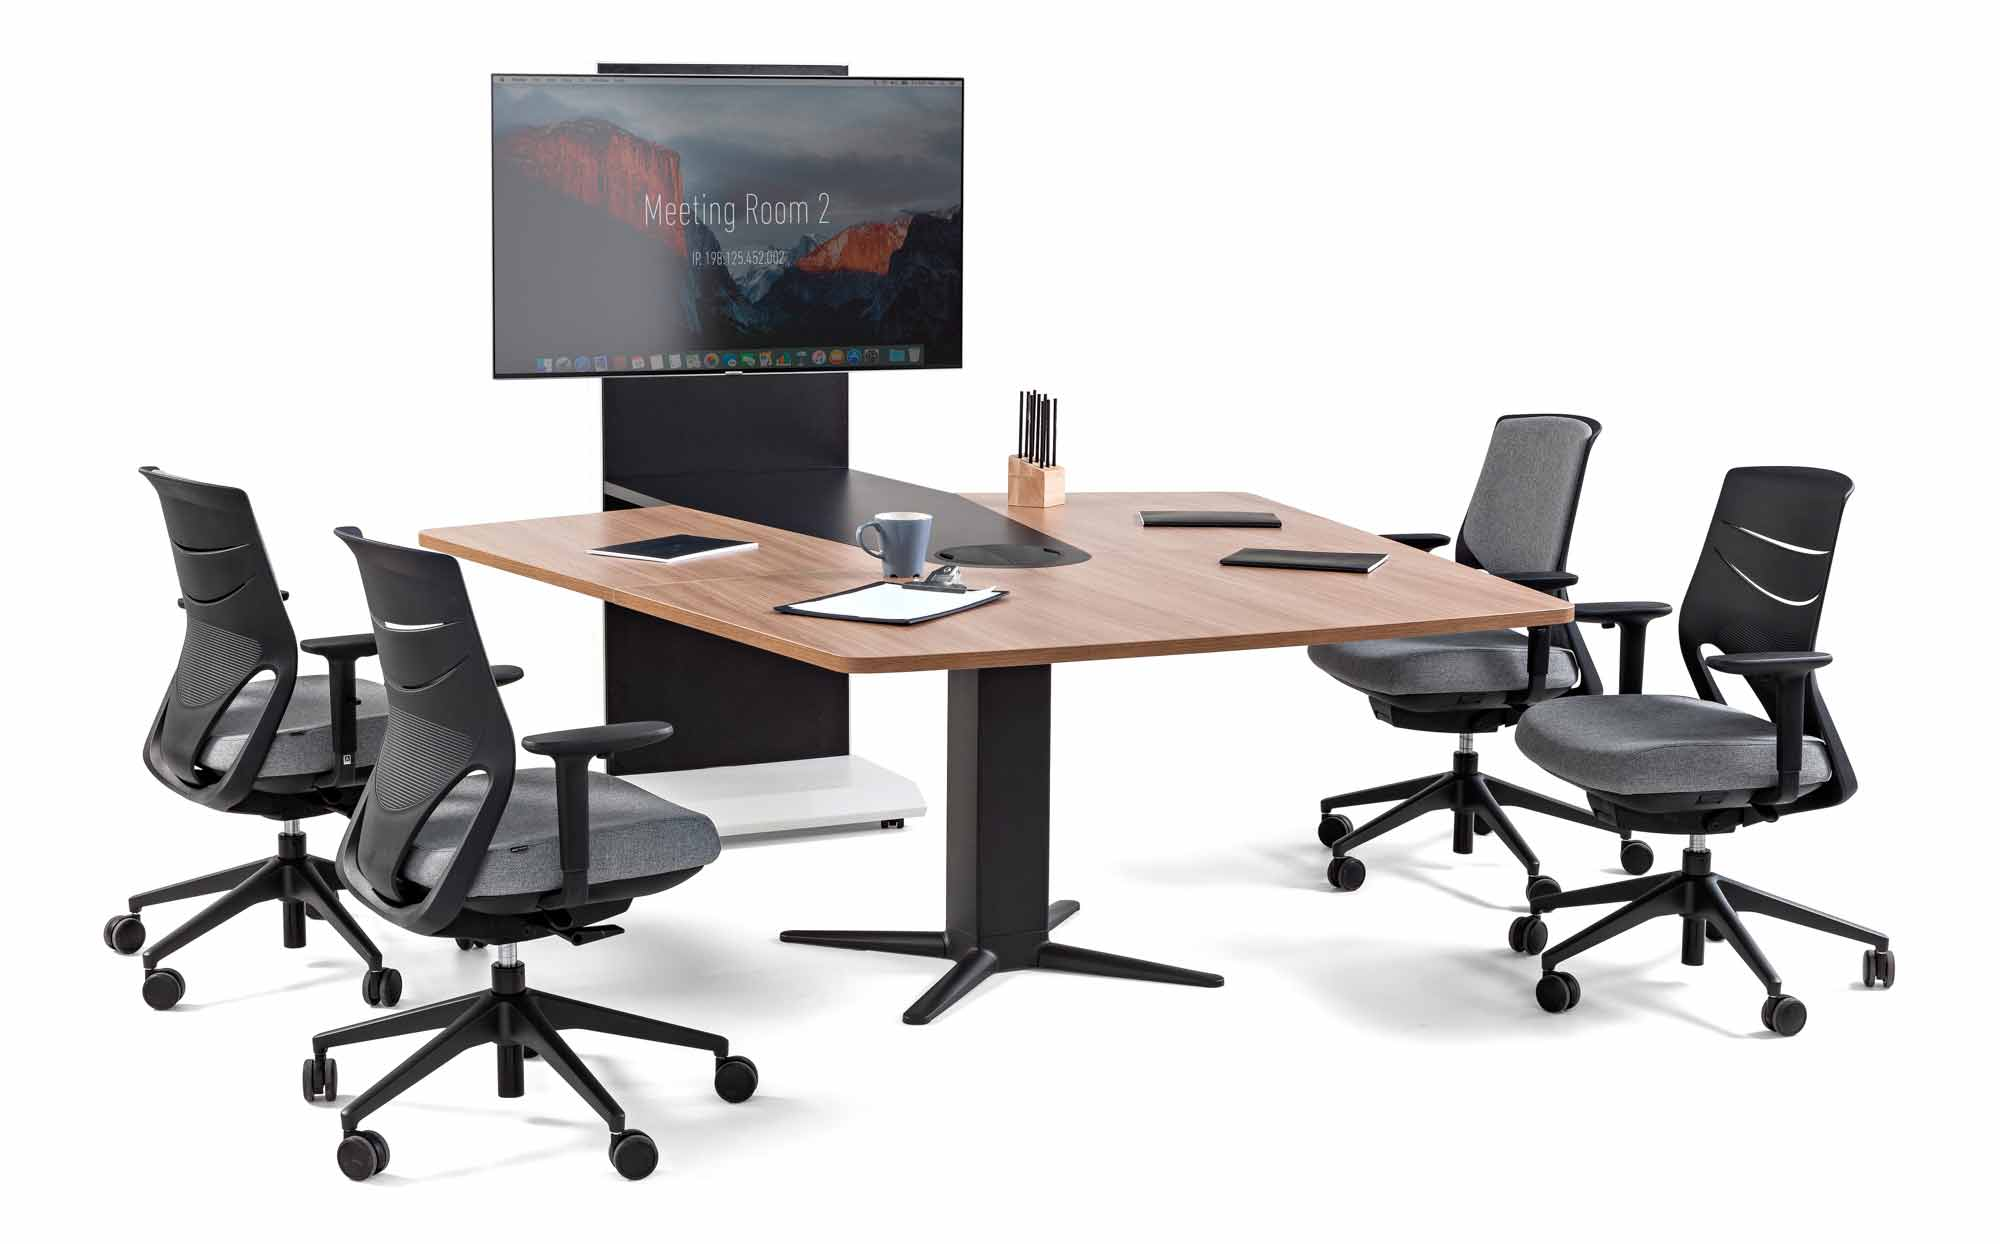 desk power executive operative video conference meeting tables efit chair black grey technology highclass design modern adjustable quality style excellence masof actiu